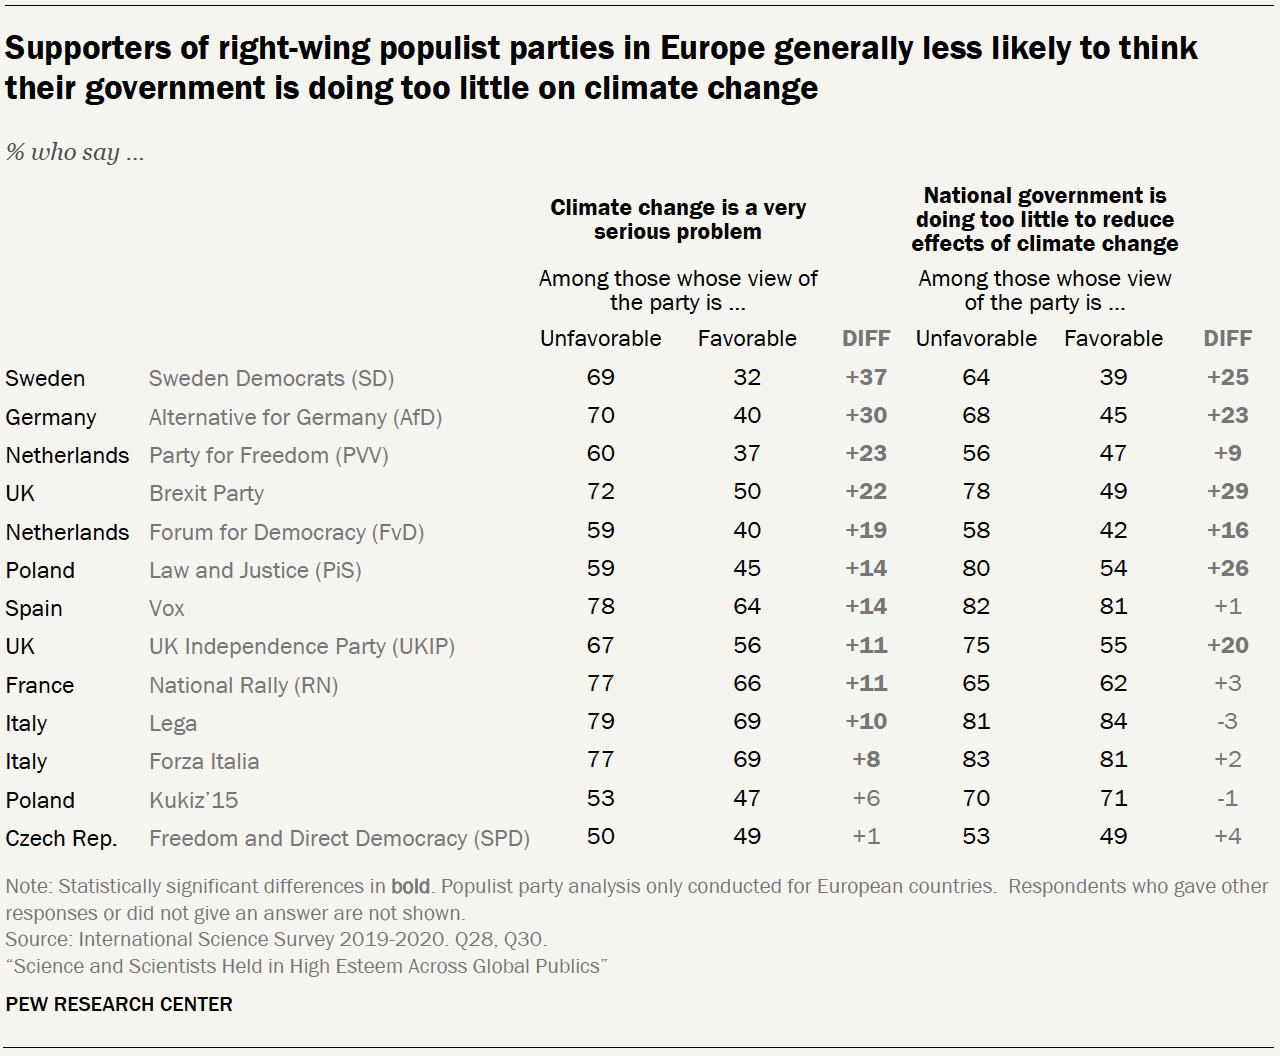 Chart shows supporters of right-wing populist parties in Europe generally less likely to think their government is doing too little on climate change